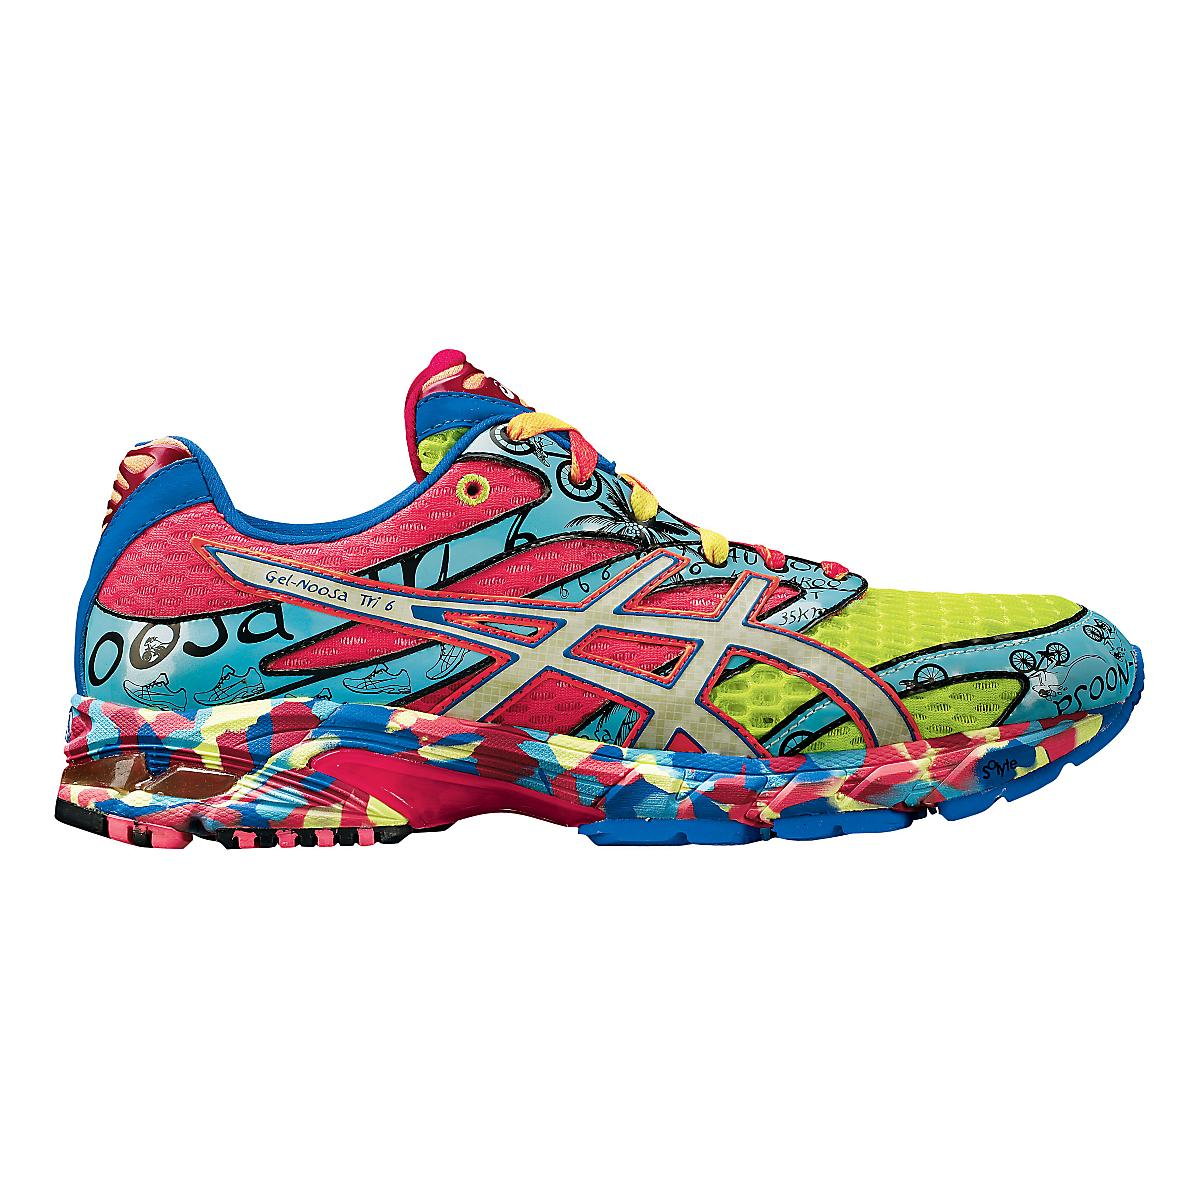 Tennis Shoes For Walking And Running